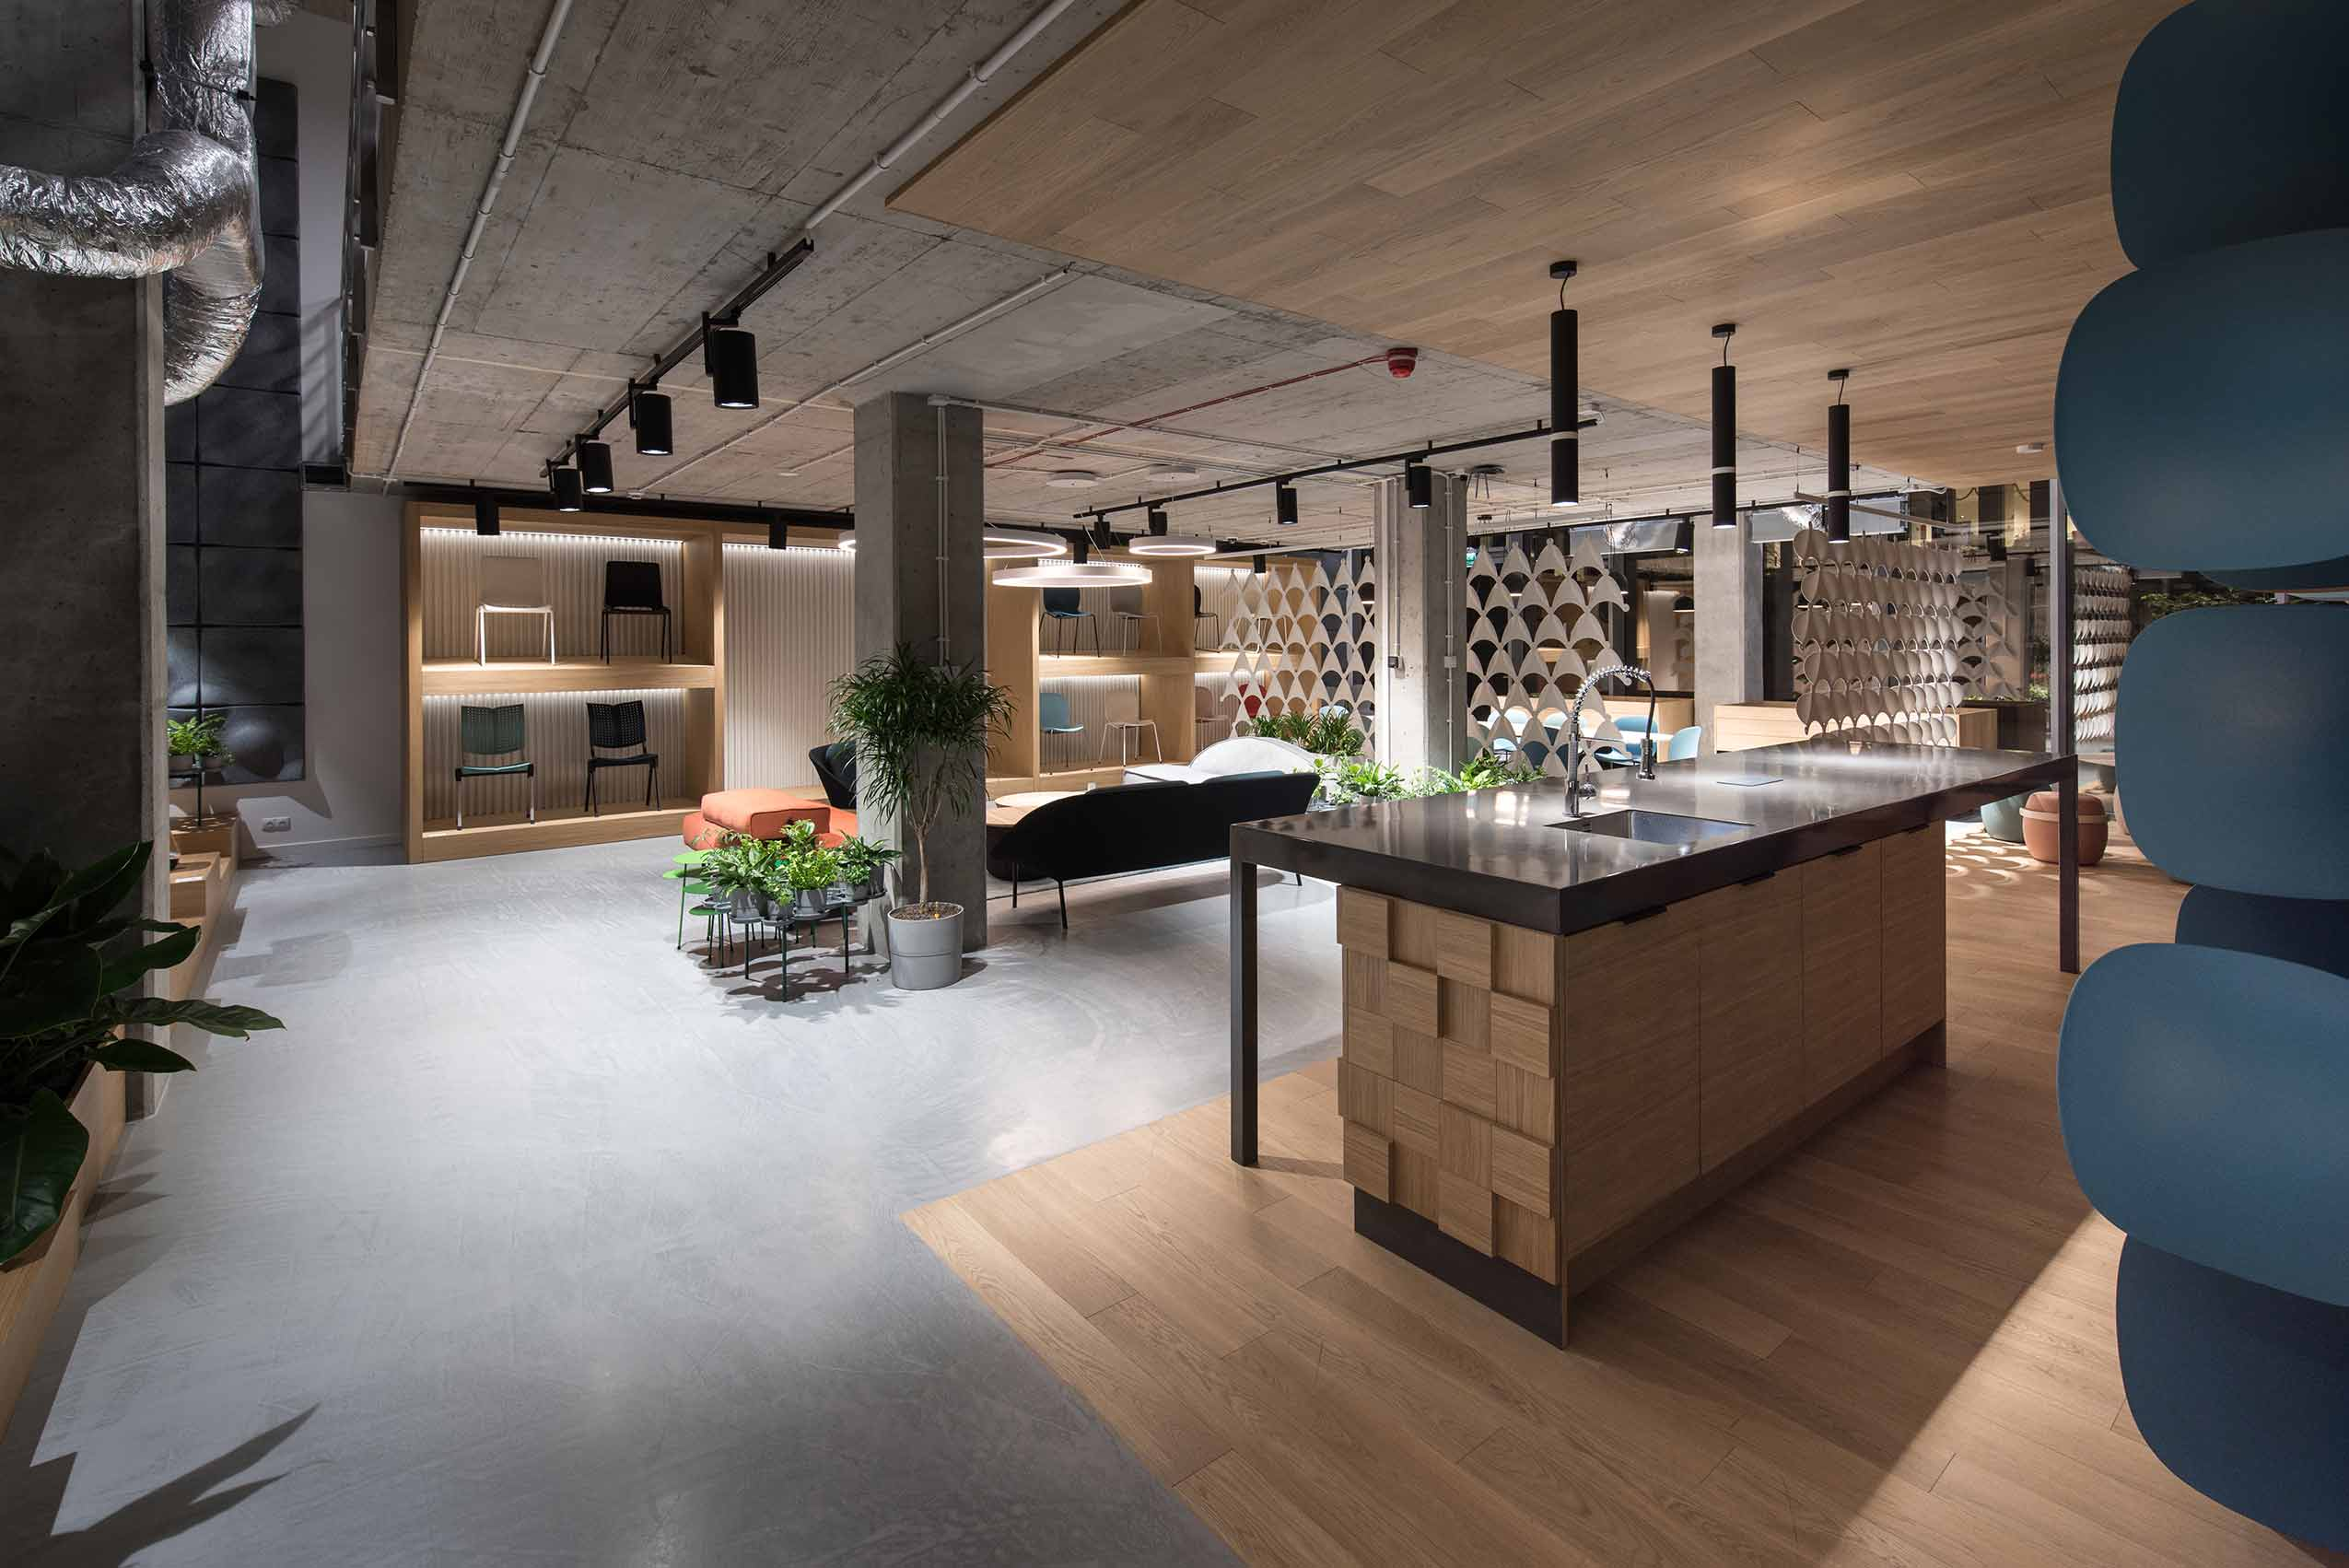 Interior image of Flokk showroom in Warsaw, Poland with kitchen area